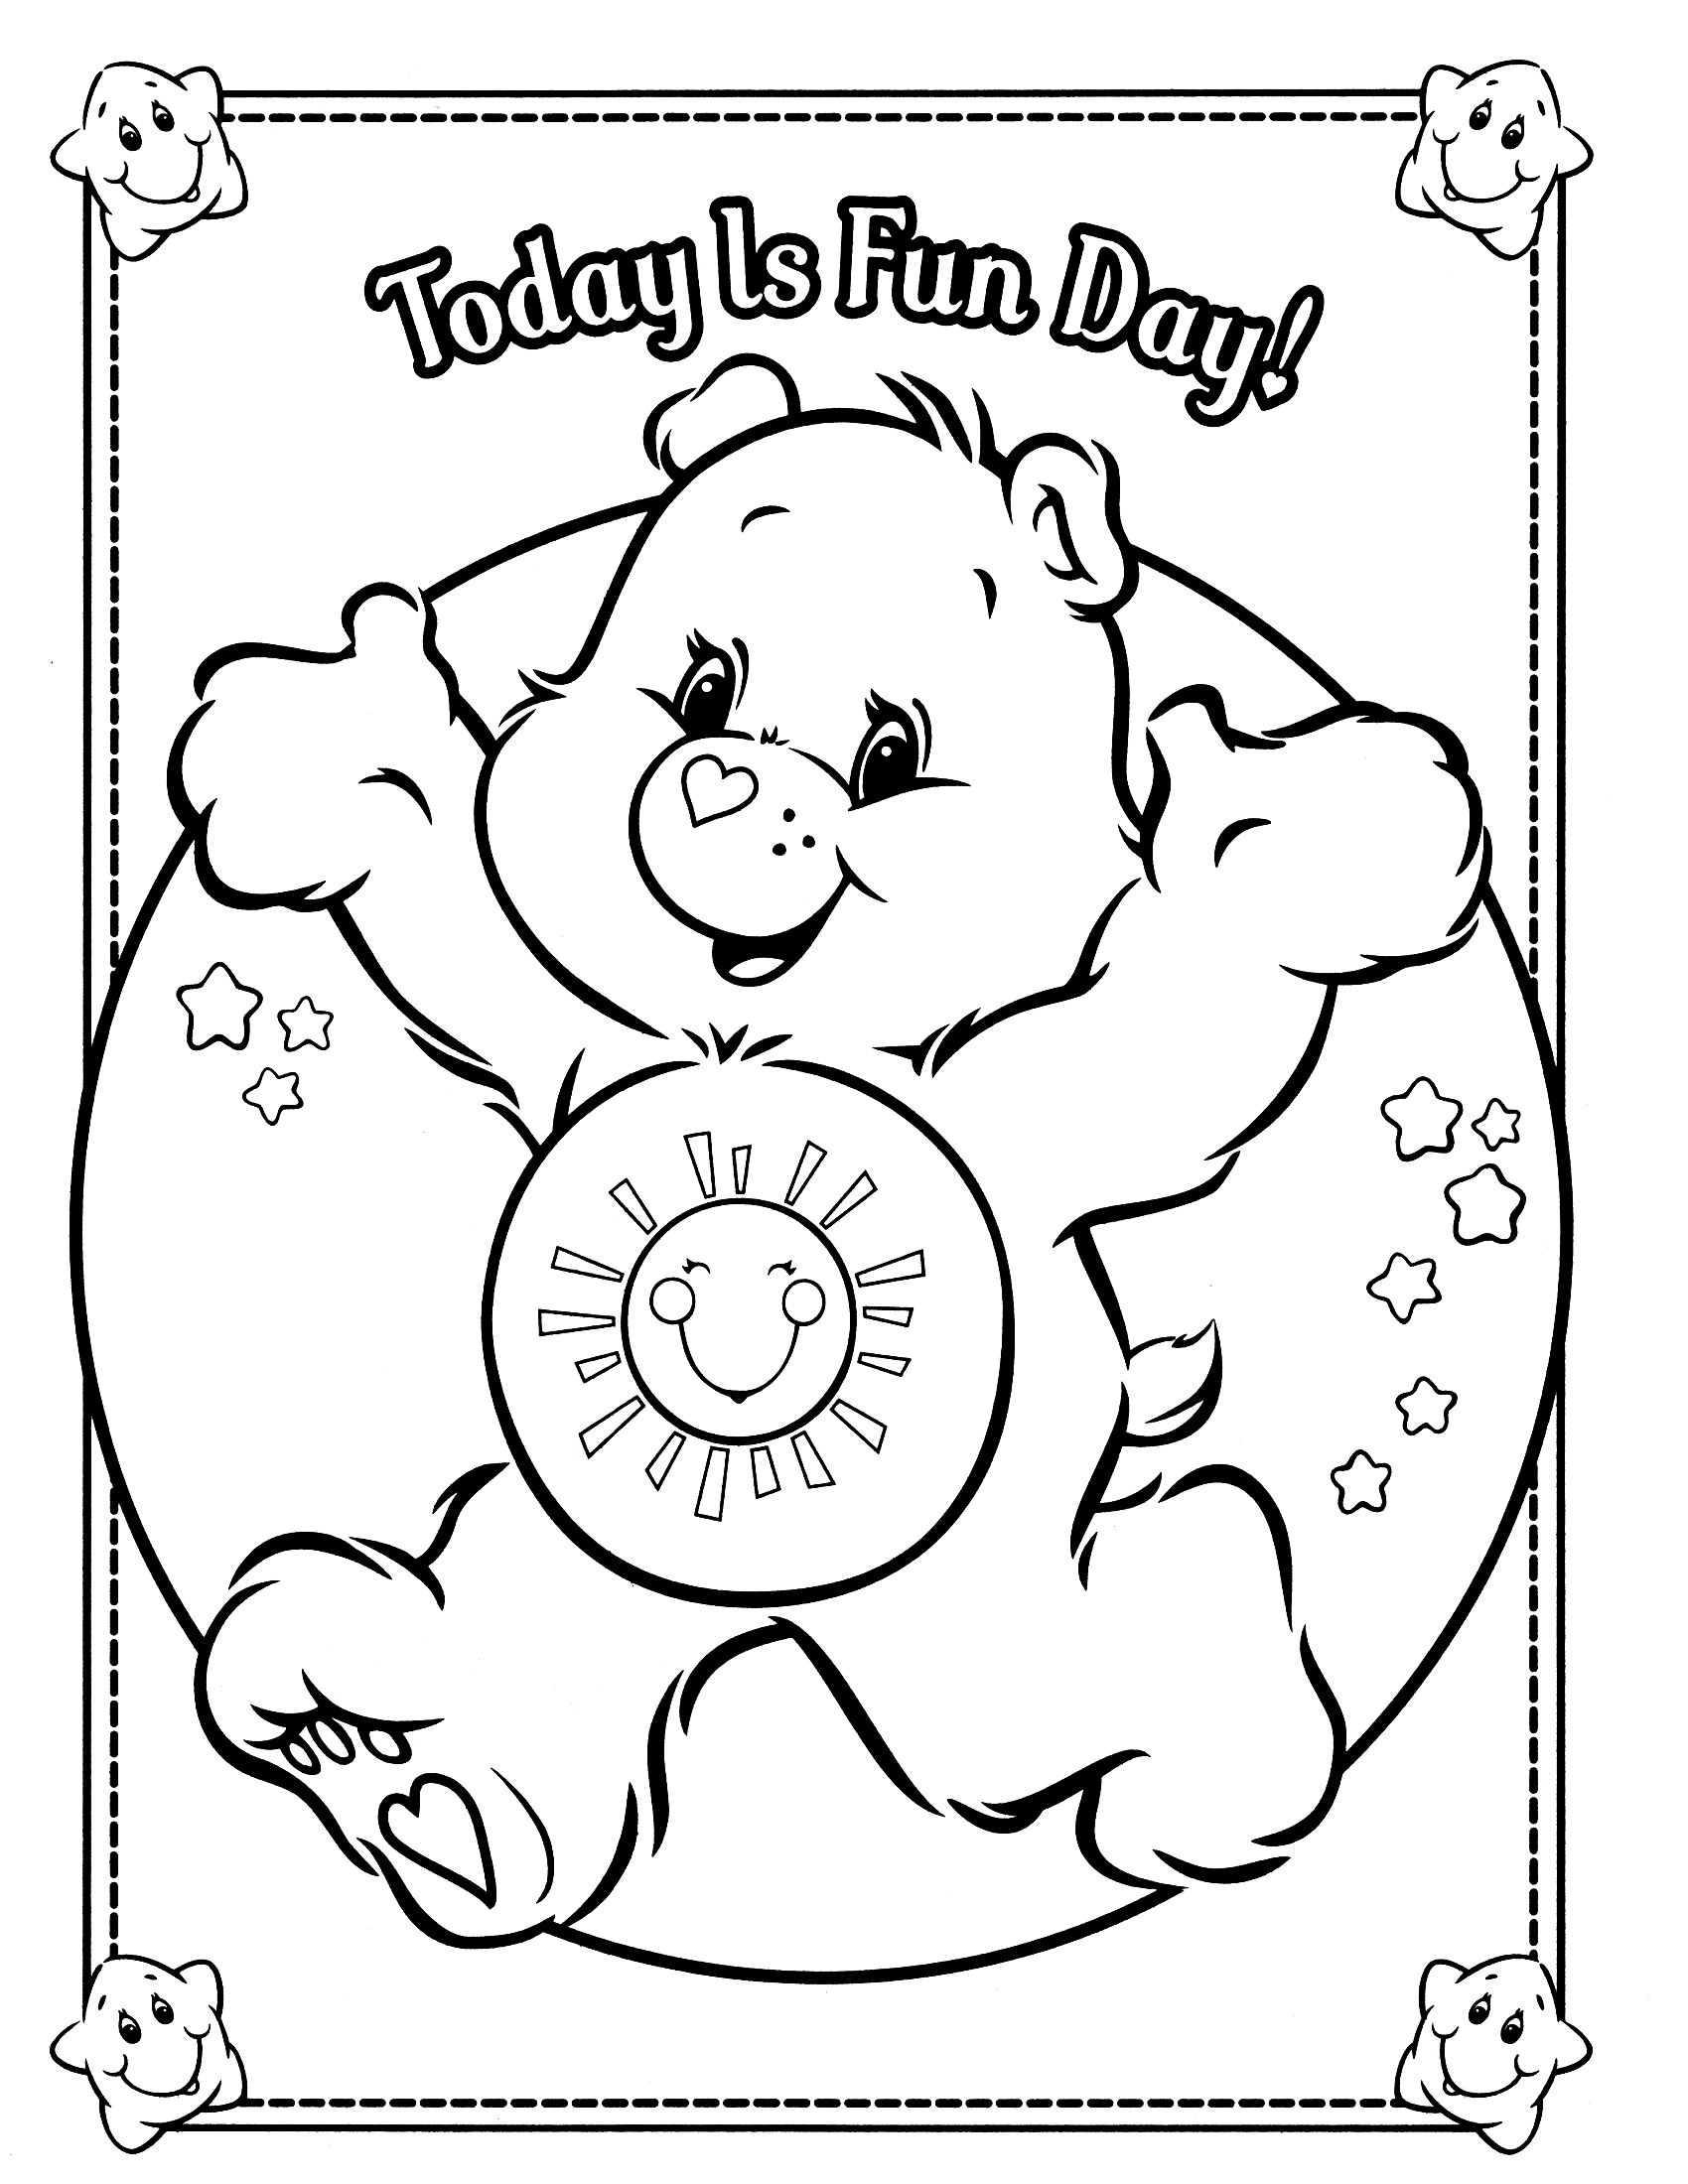 care bears coloring page Bear coloring pages, Cute